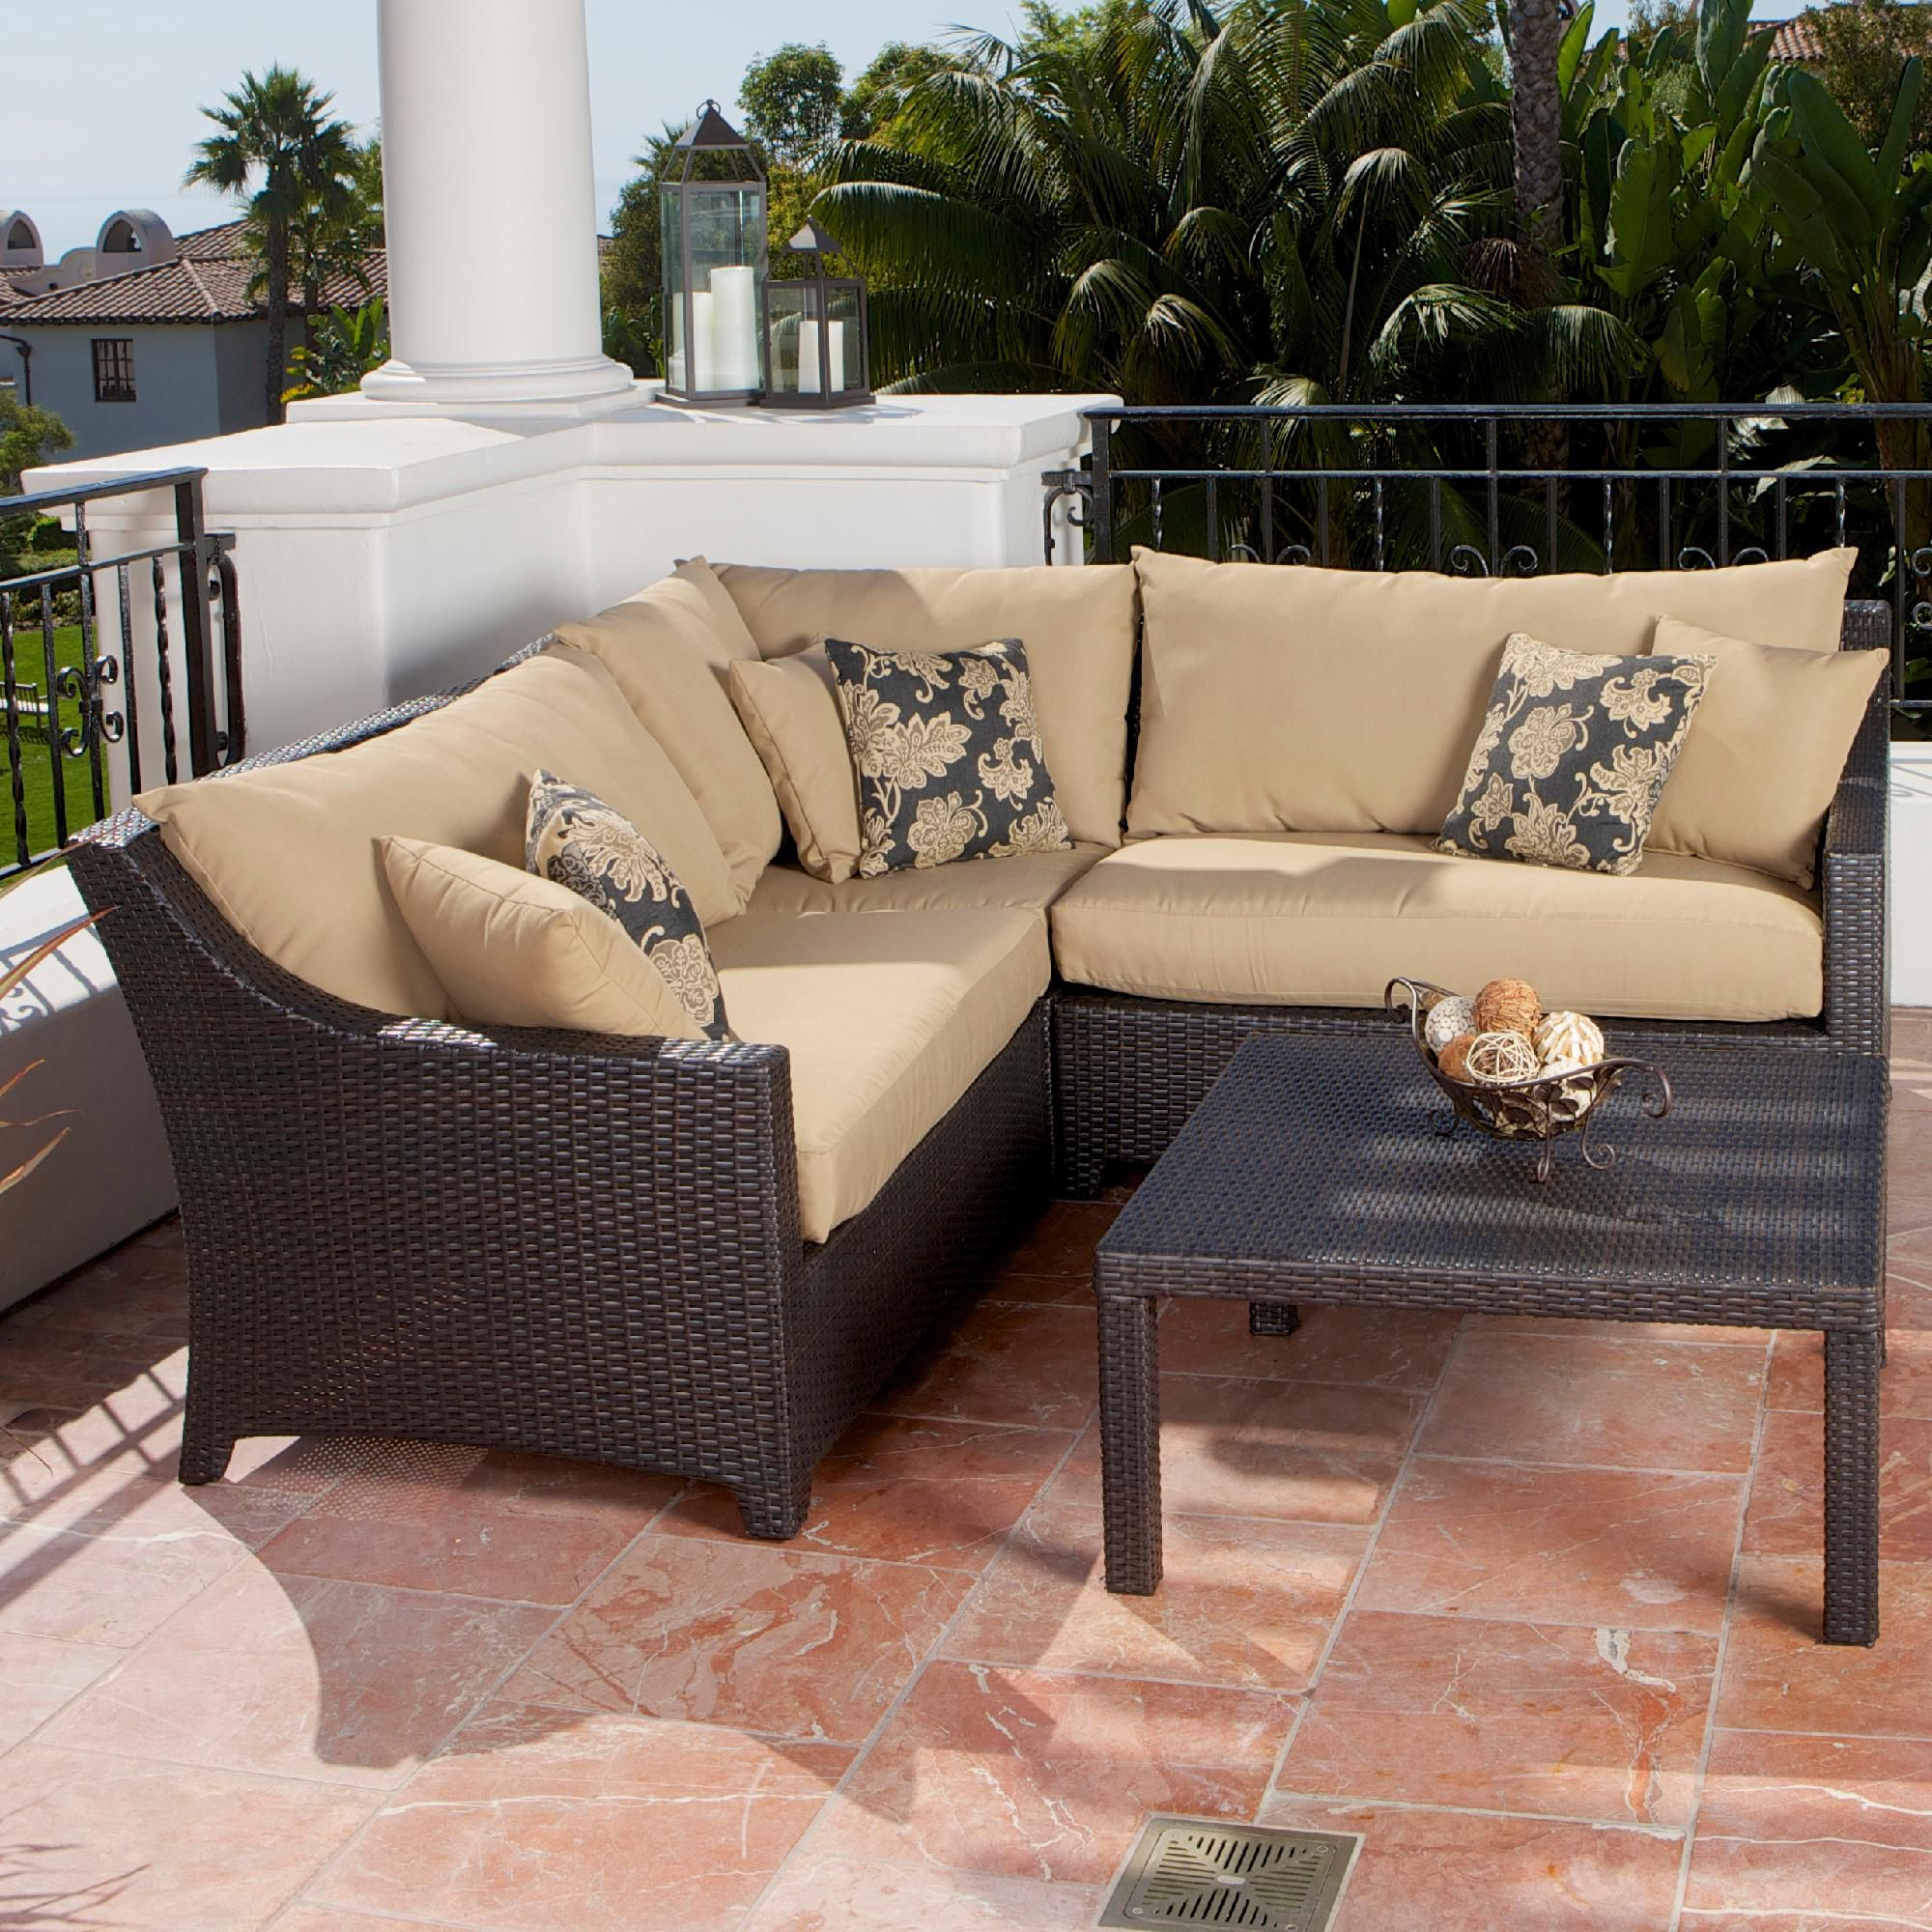 RST Brands Delano™ 4-Piece Corner Sectional Sofa and Coffee Table Set